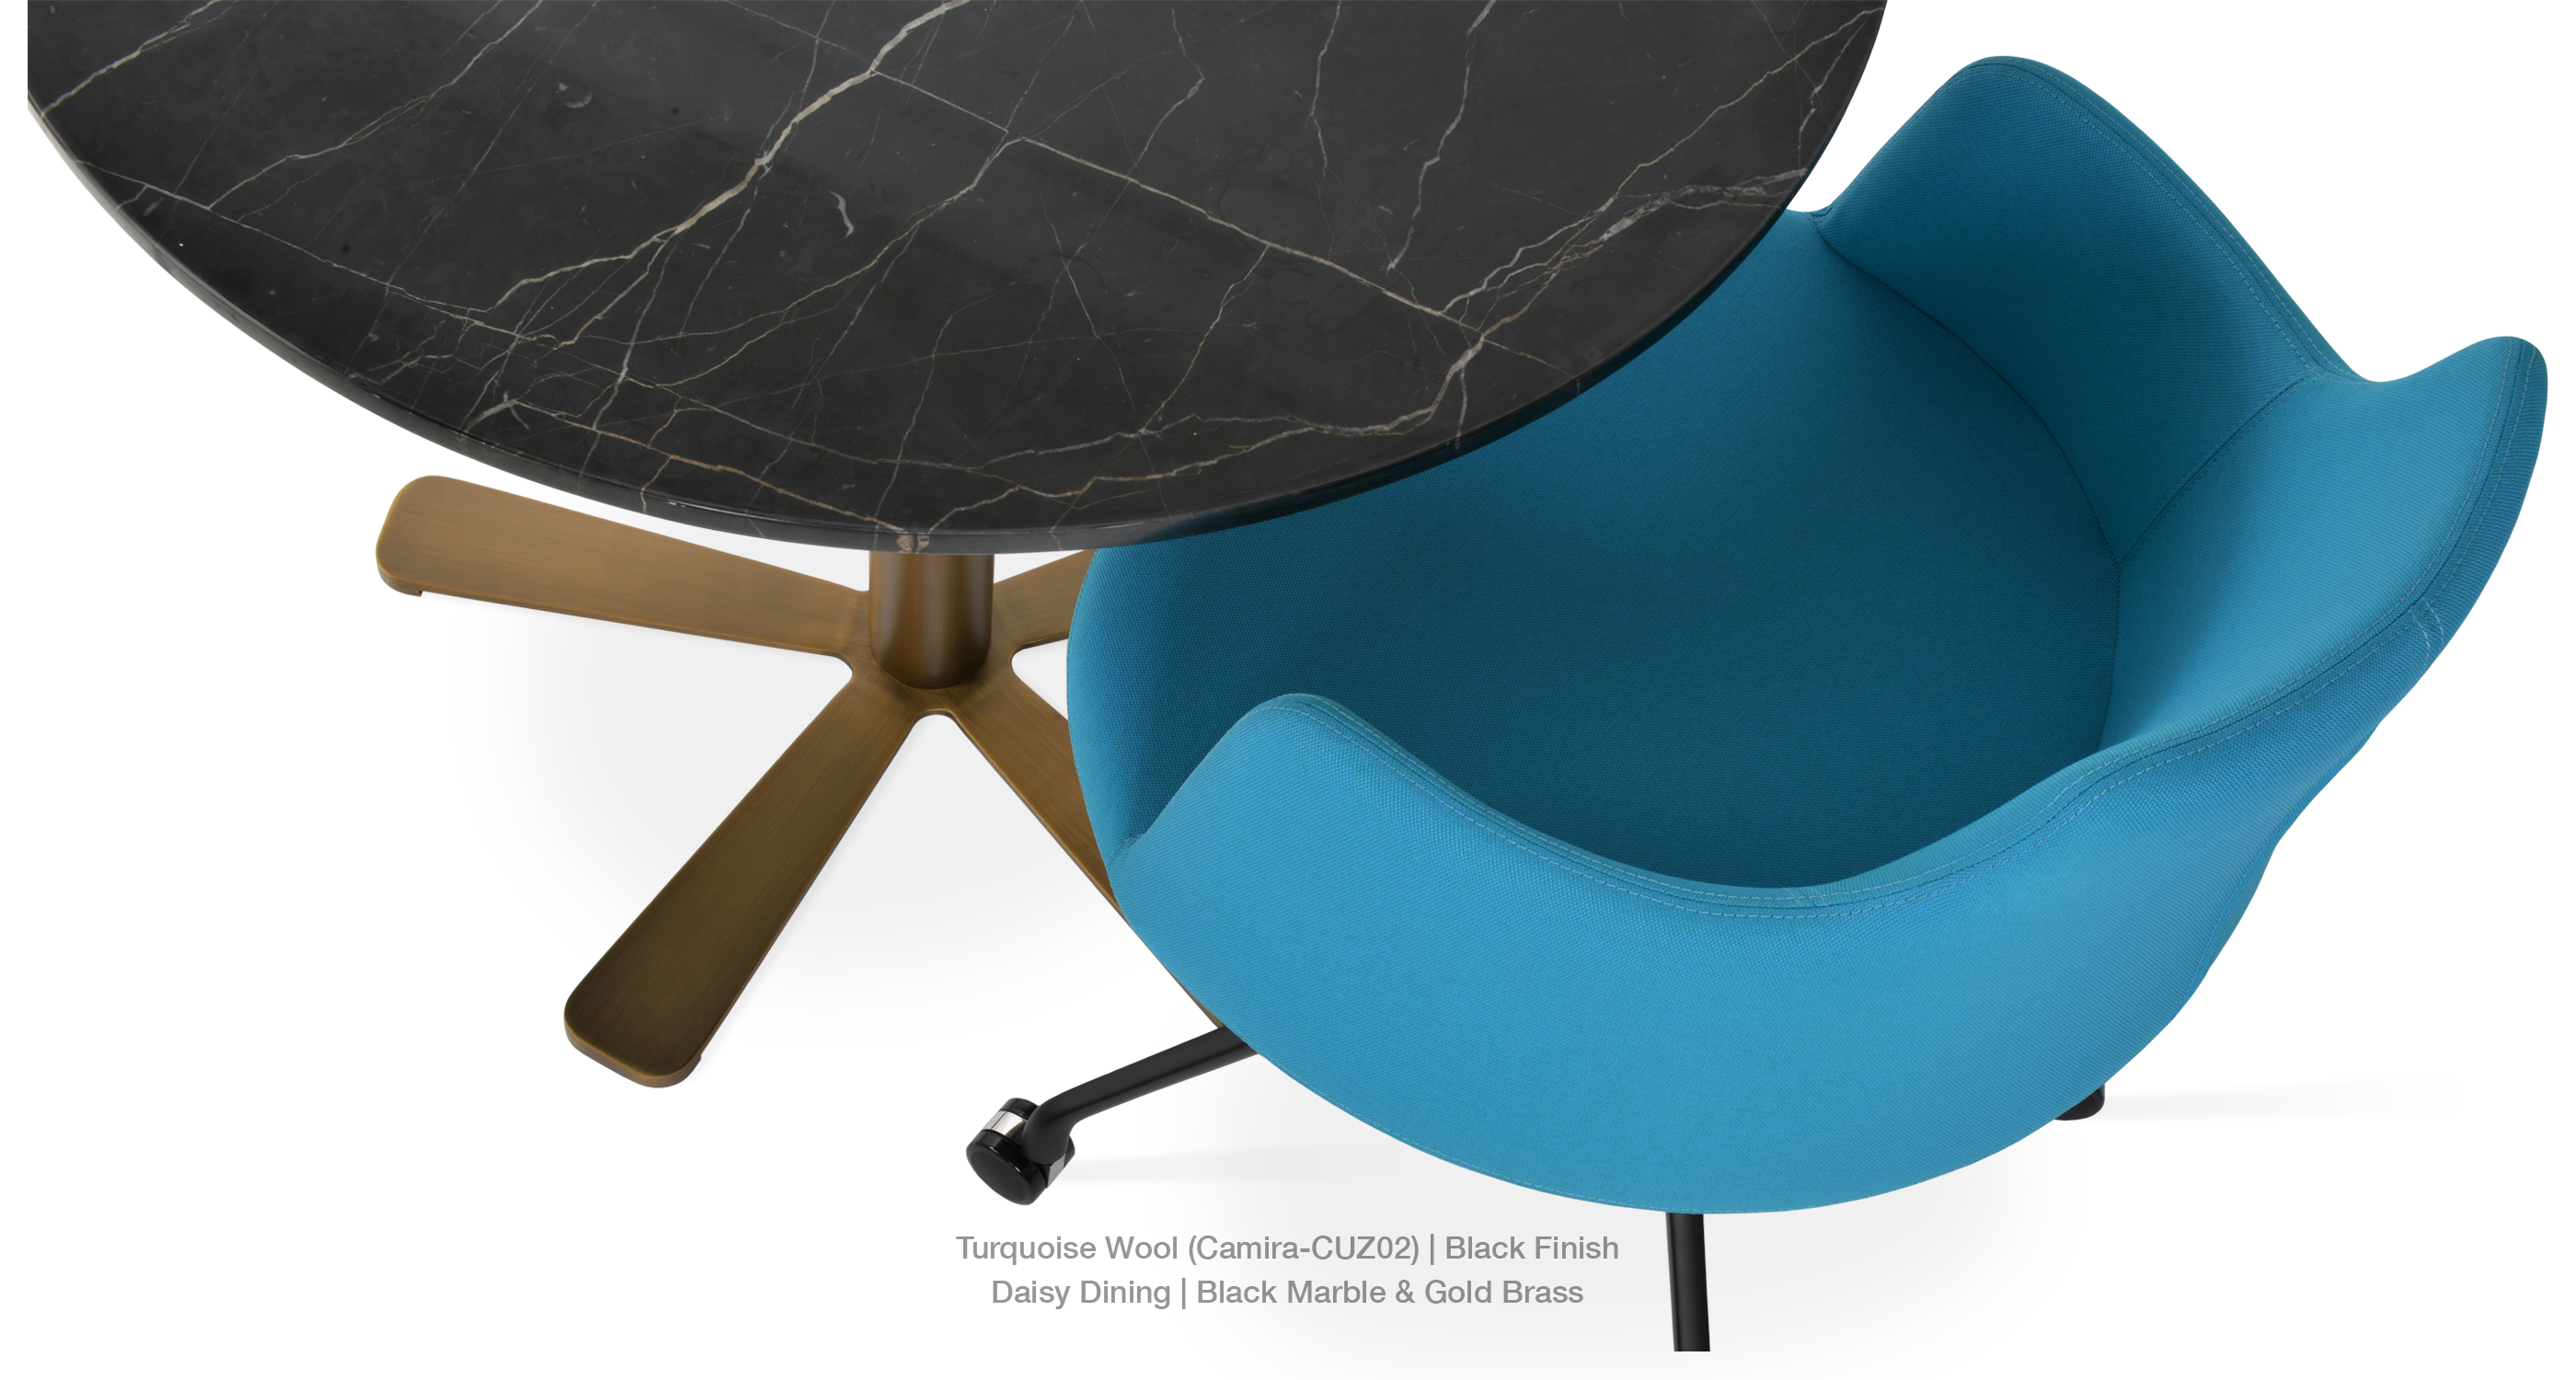 Turquoise camira - daisy dining